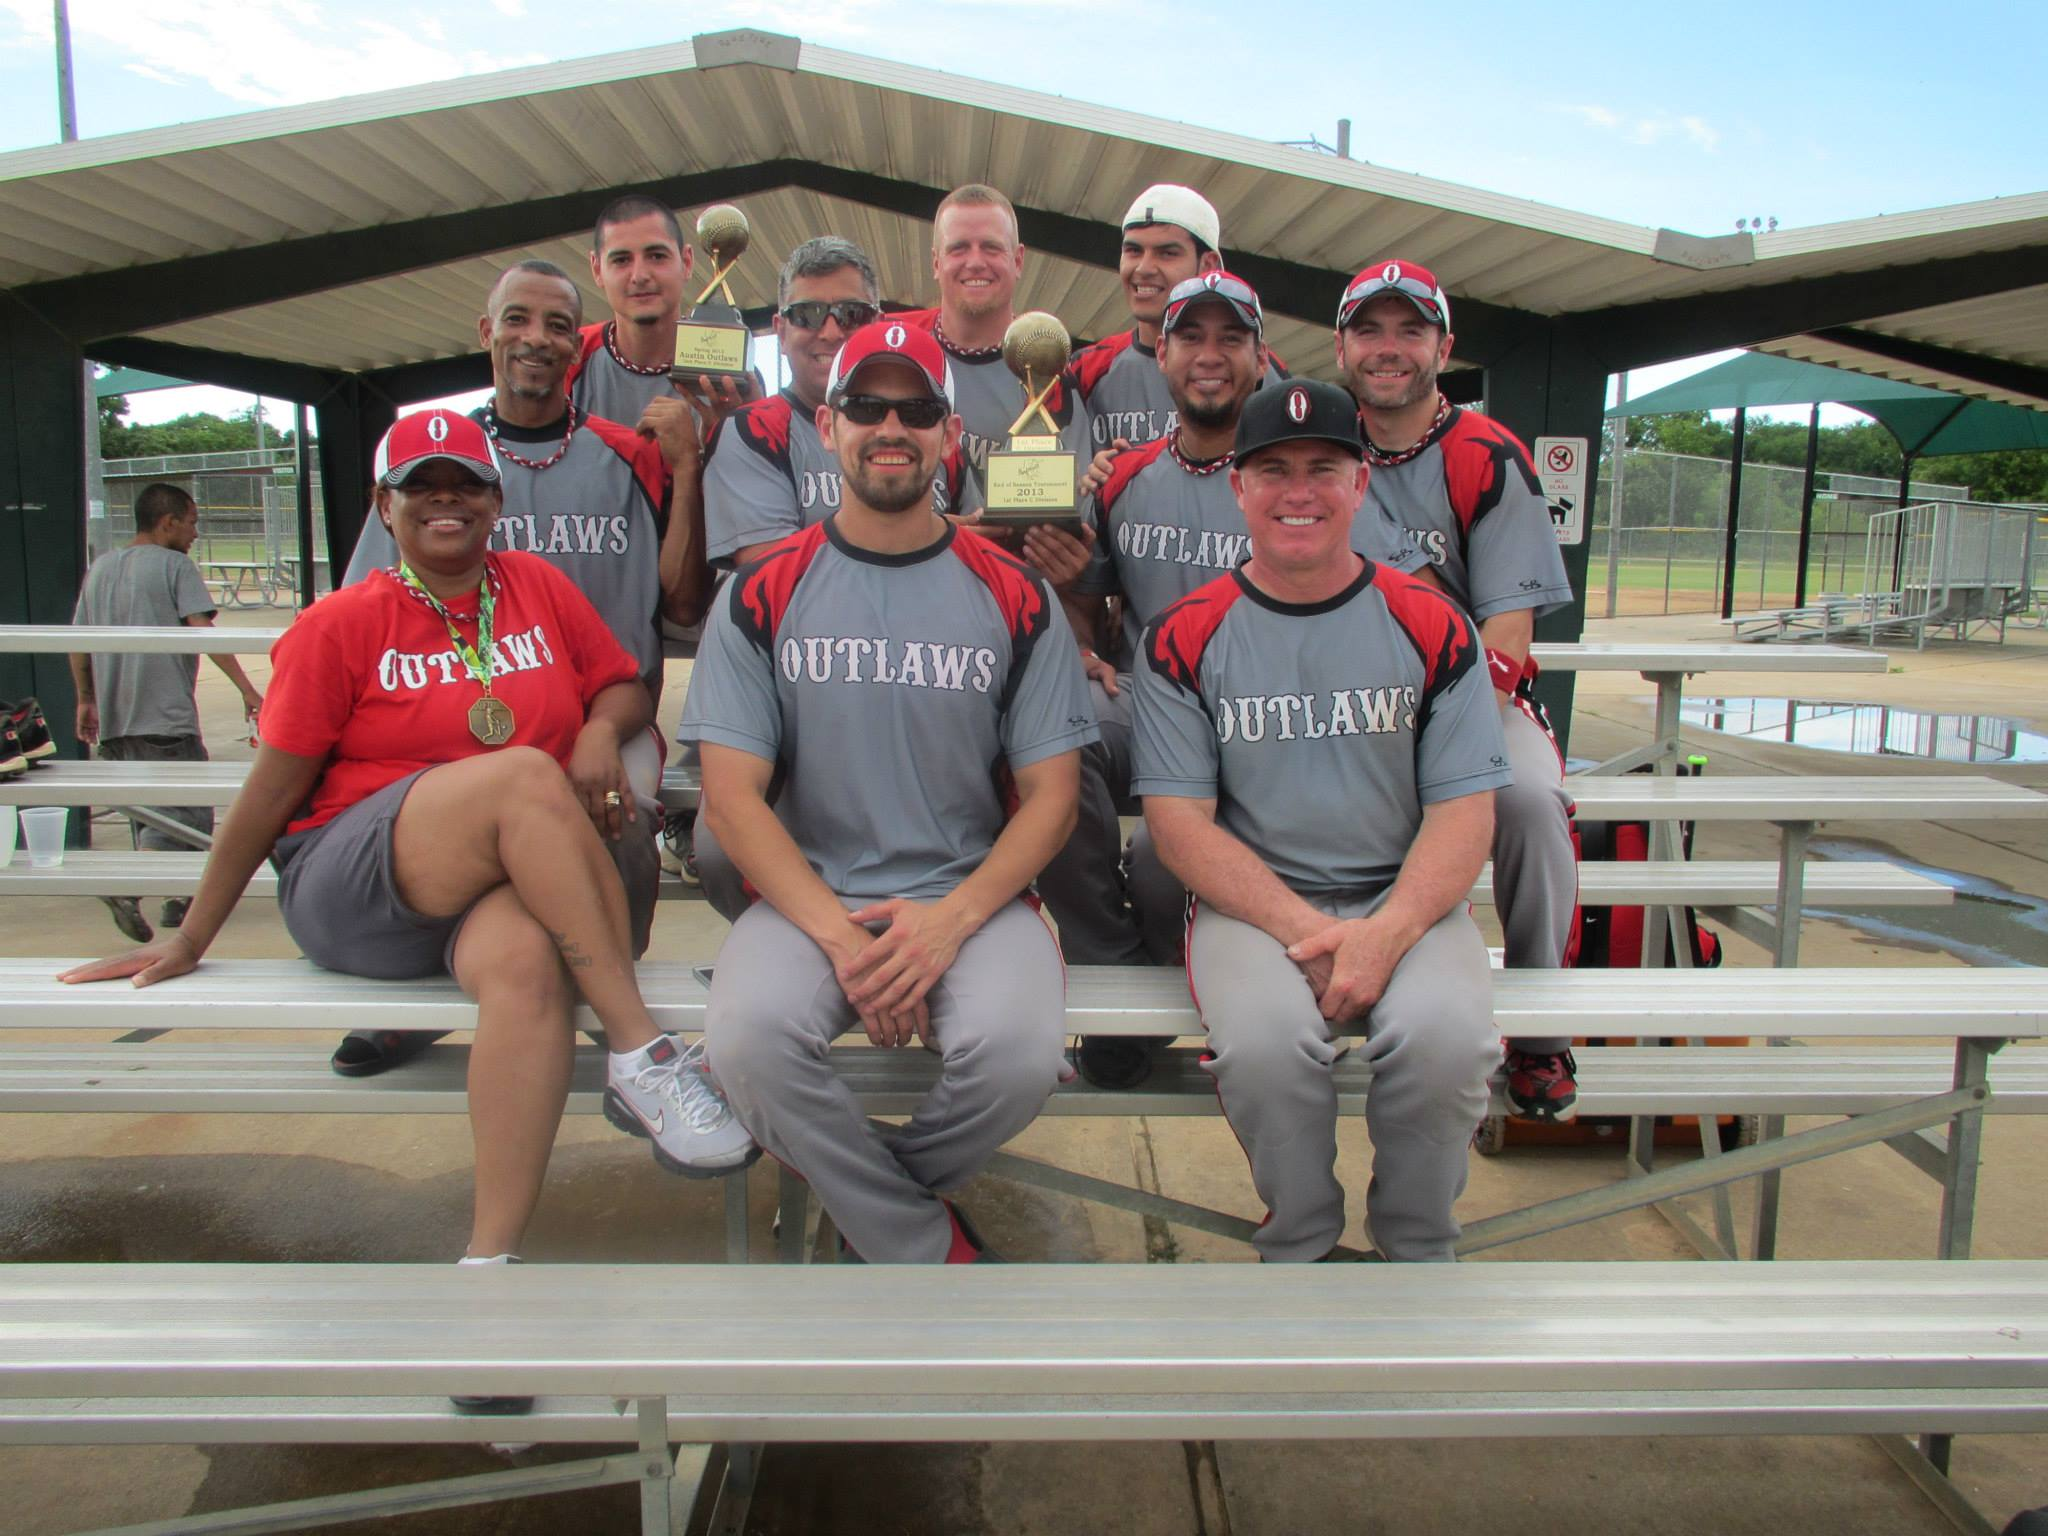 Outlaws accept 3rd Place Finish in 2013 Beat the Heat Classic in